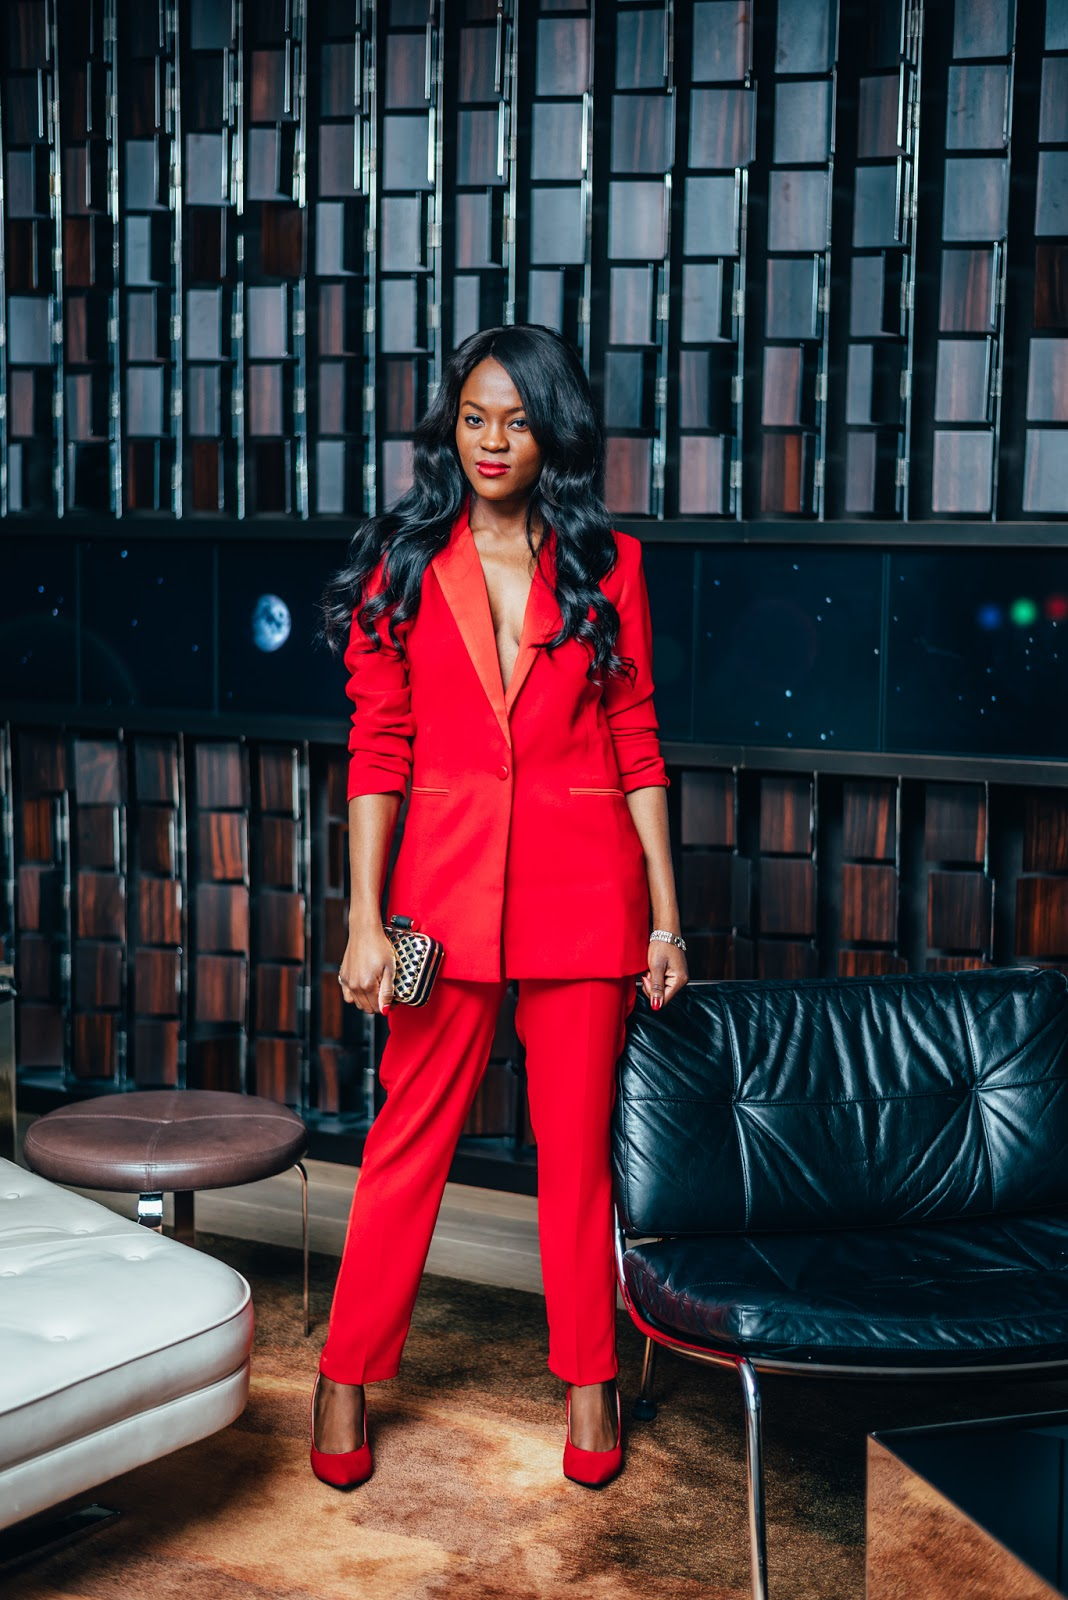 Red Suit for the Holidays, Cranberry Tantrums, Chicago Fashion Blog